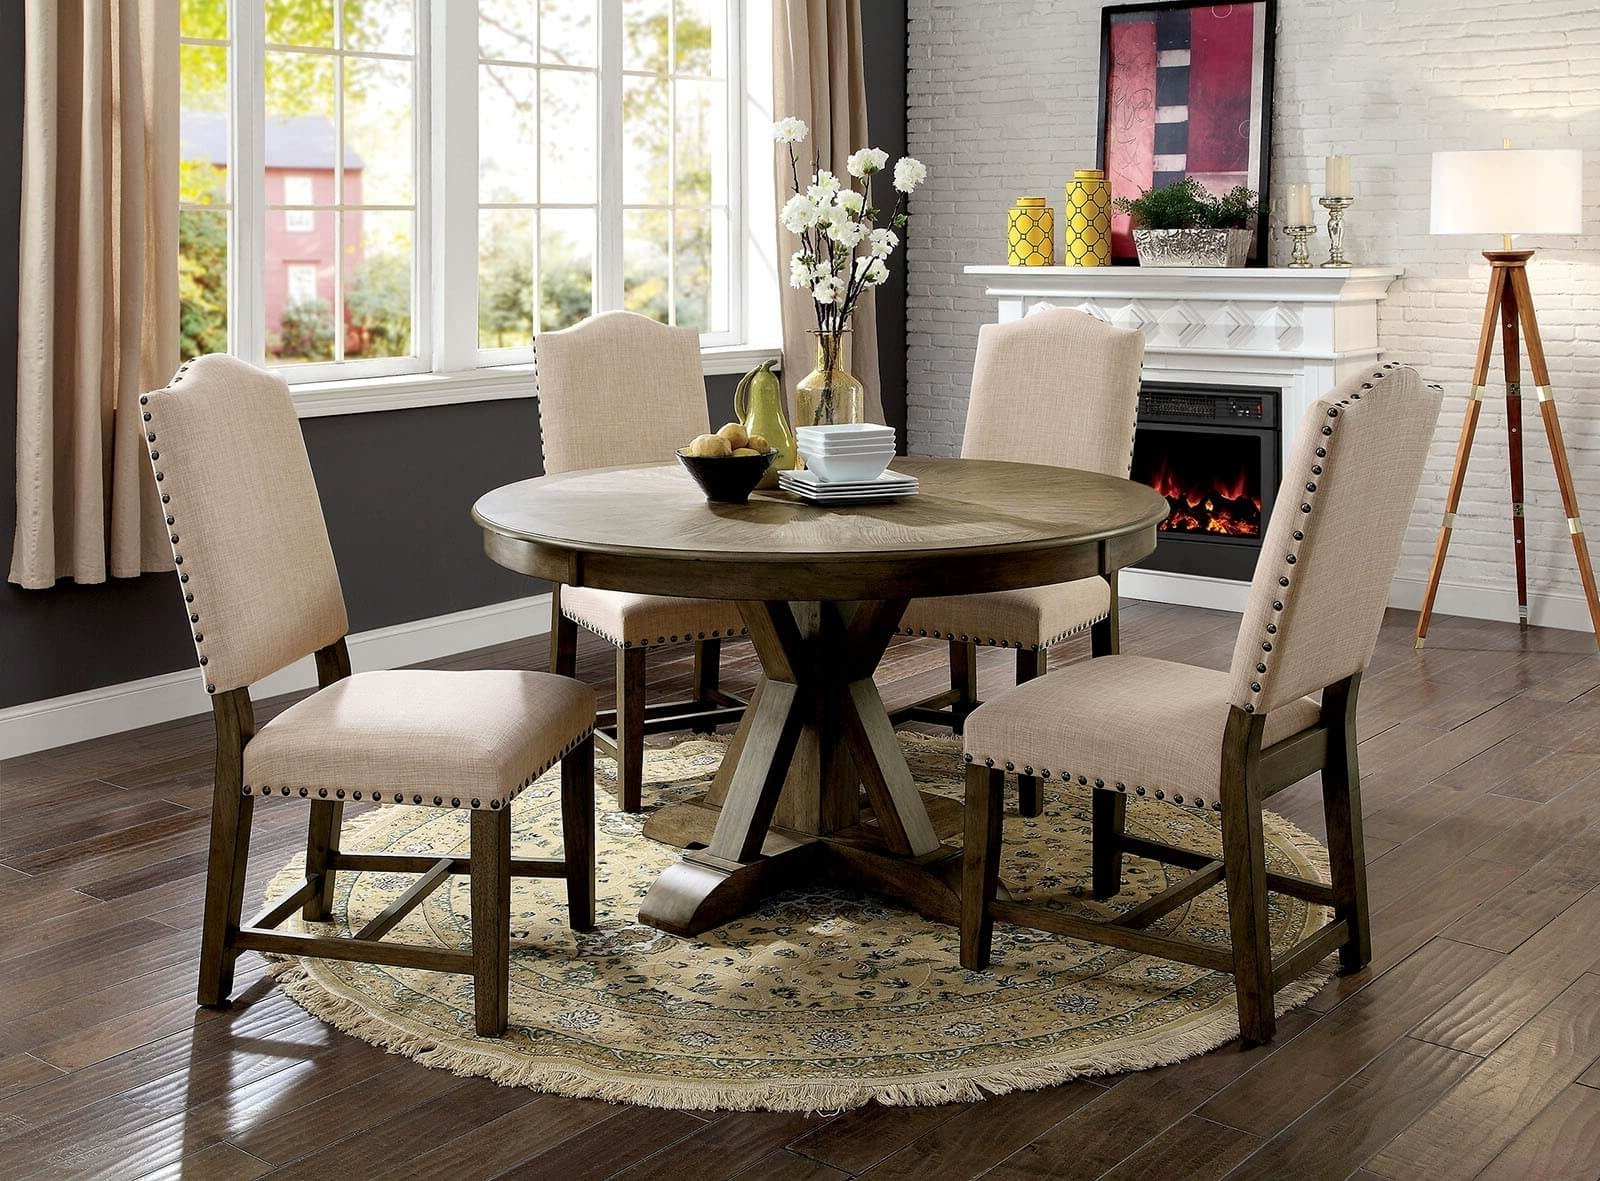 5 Piece Julia Round Dining Set Light Oak Finish – Usa Warehouse Pertaining To Most Recently Released Valencia 5 Piece Round Dining Sets With Uph Seat Side Chairs (View 18 of 25)